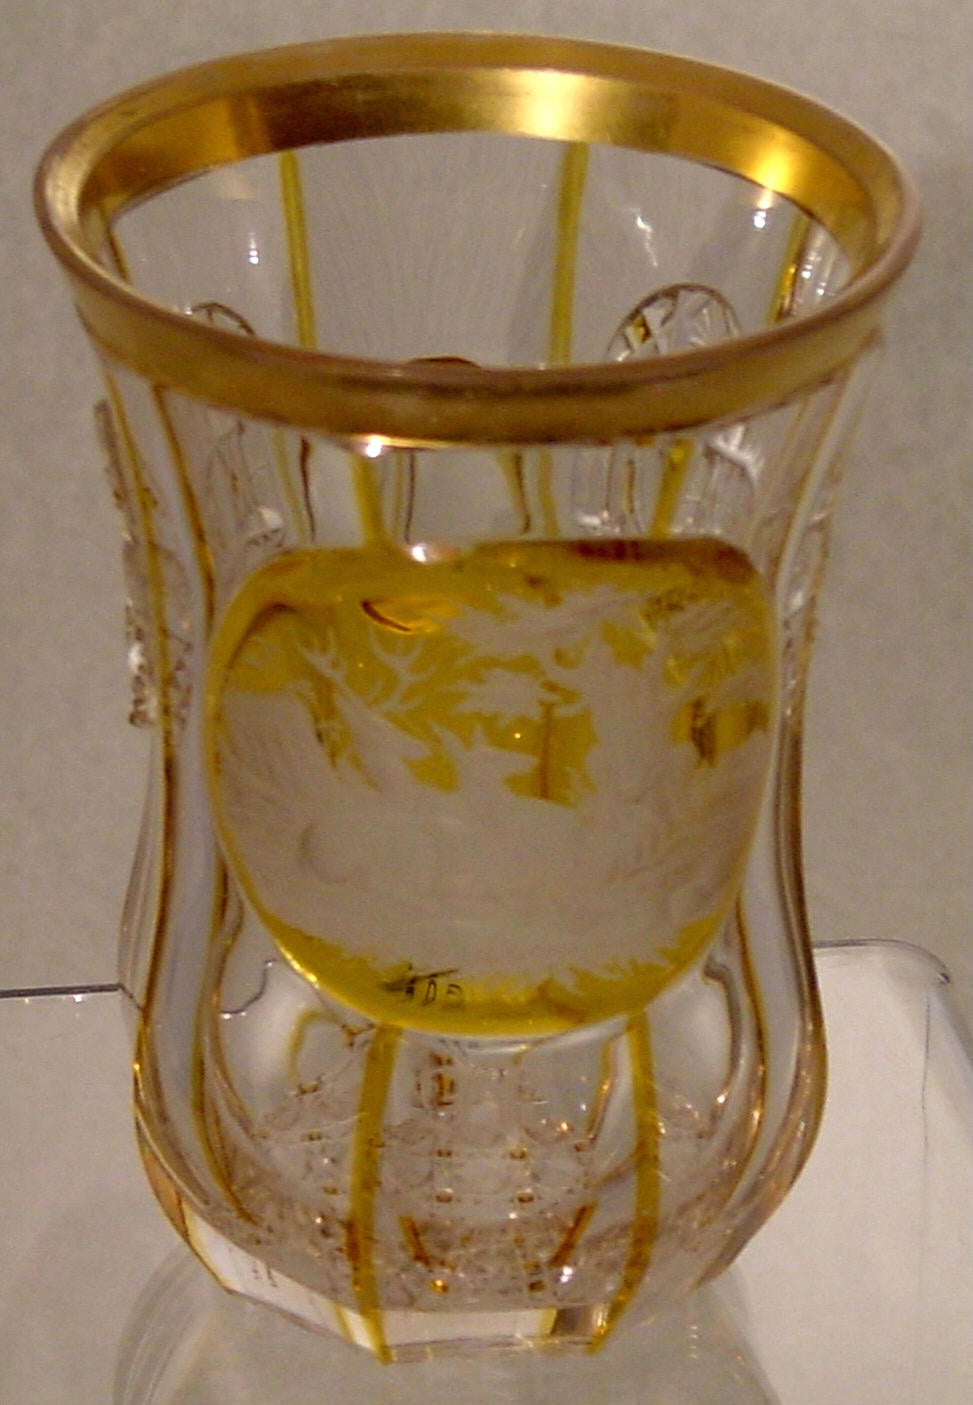 910403 Crystal W/Amber Flashed Oval Panel Of 3 Engraved Deer, Trees, Bohemian Glassware, Antique, - ReeceFurniture.com - Free Local Pick Ups: Frankenmuth, MI, Indianapolis, IN, Chicago Ridge, IL, and Detroit, MI